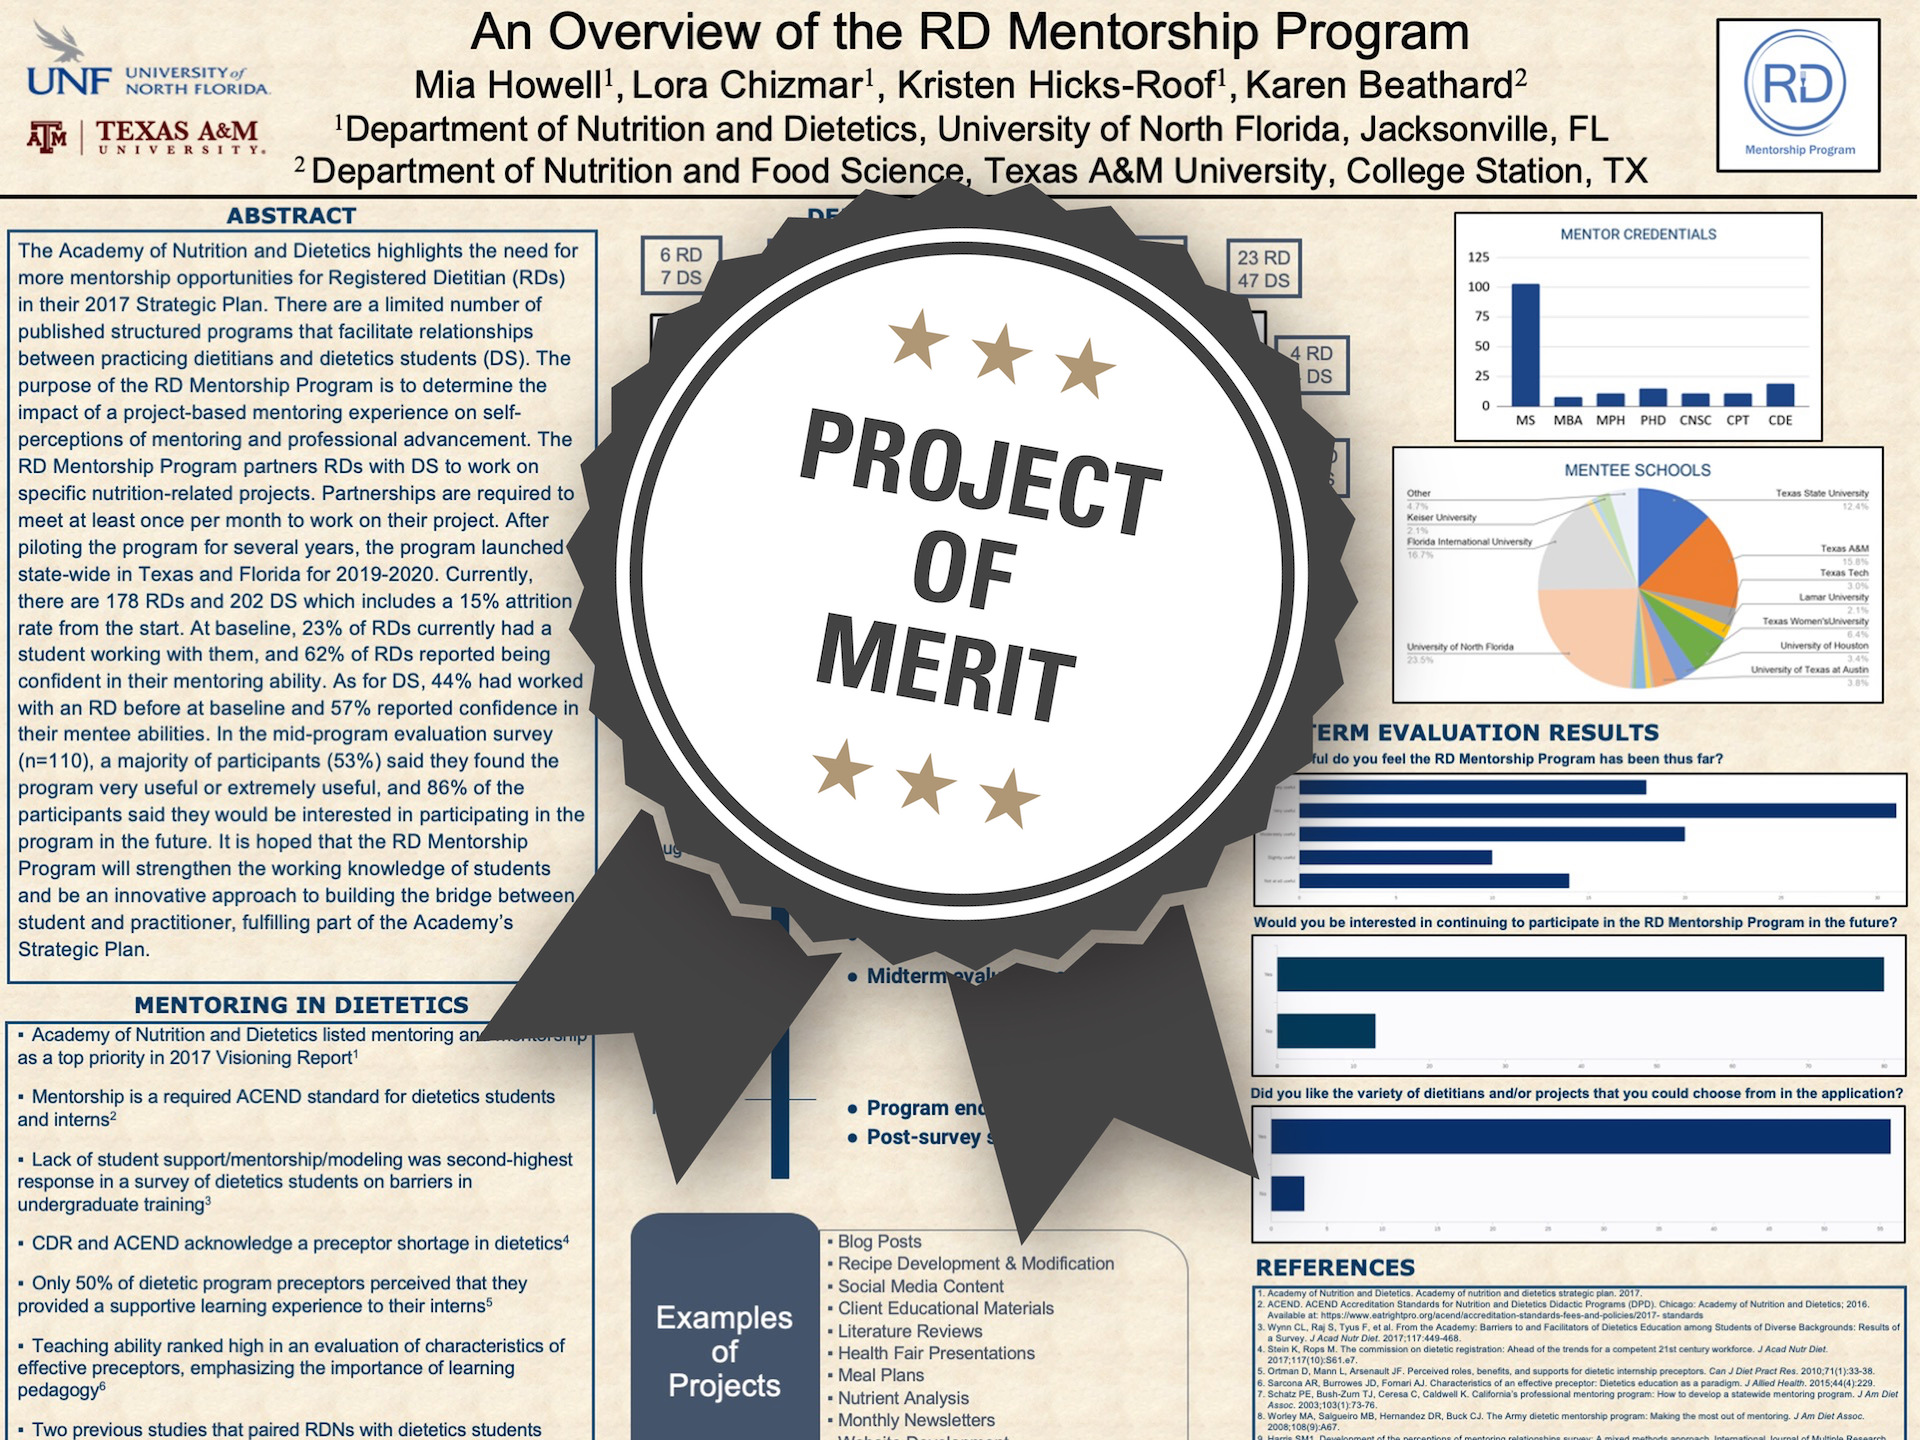 An Overview of the RD Mentorship Program Project of Merit poster